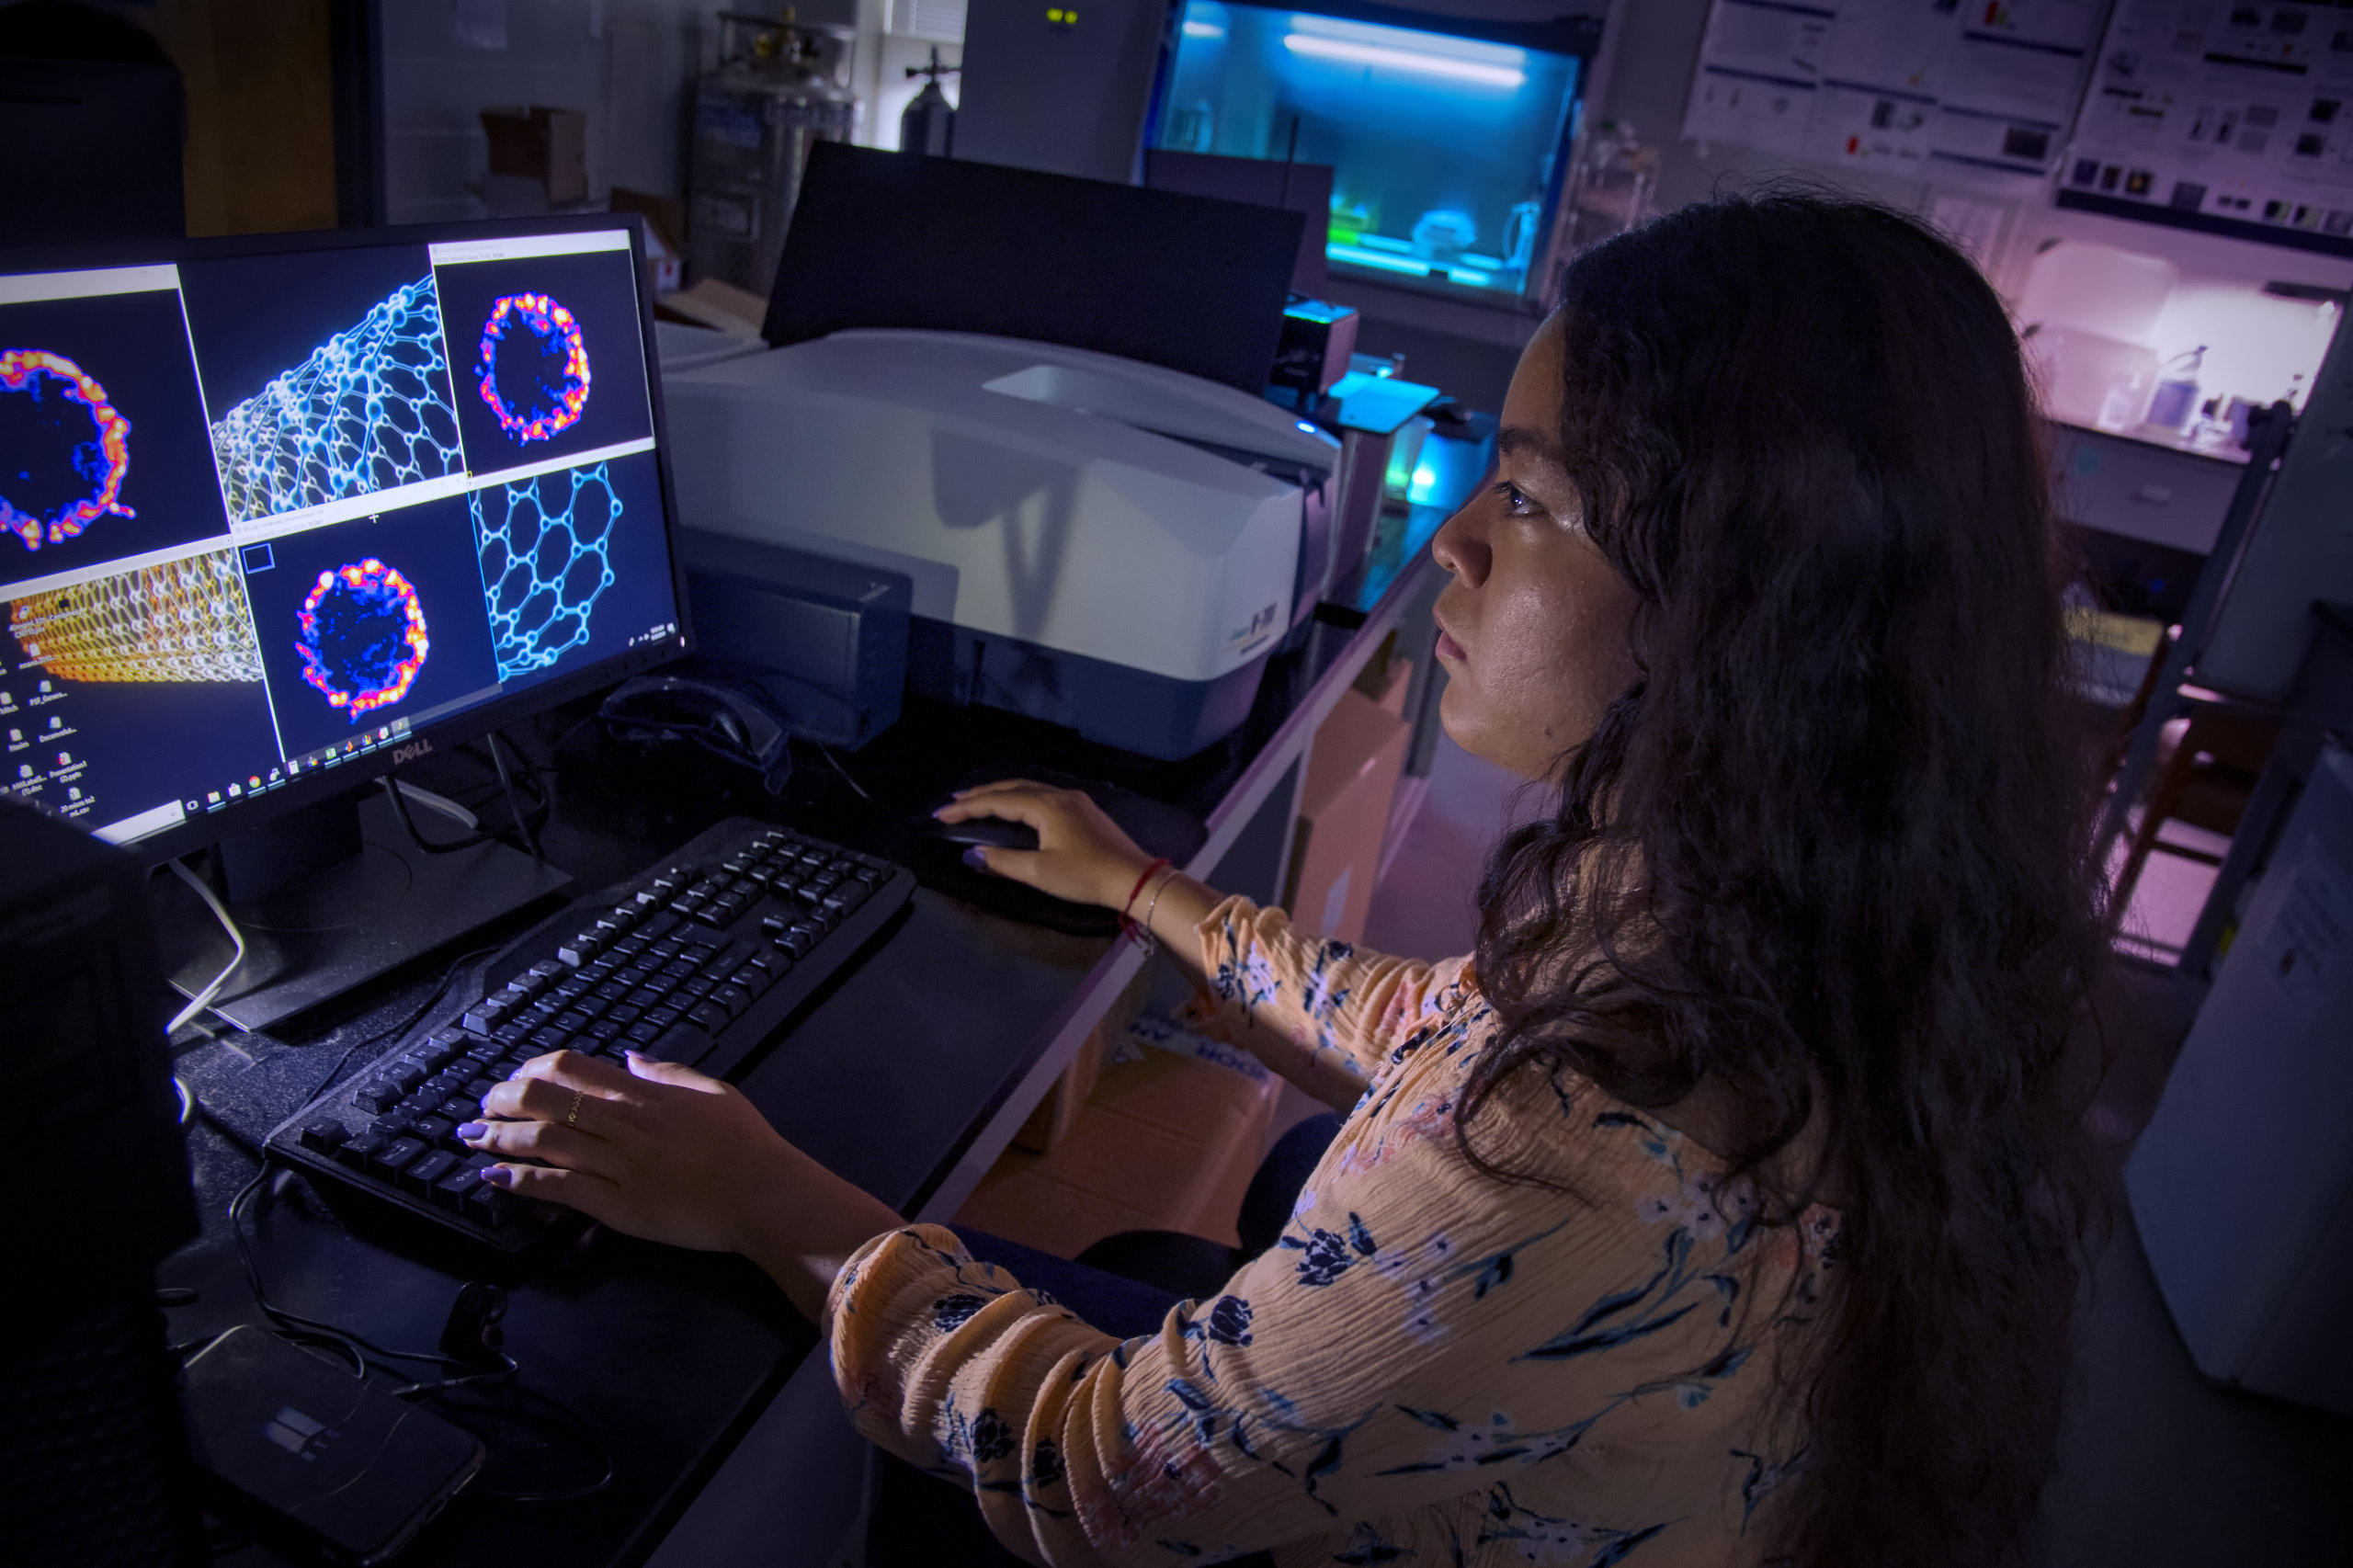 A researcher looks at molecules on a computer screen in a lab.